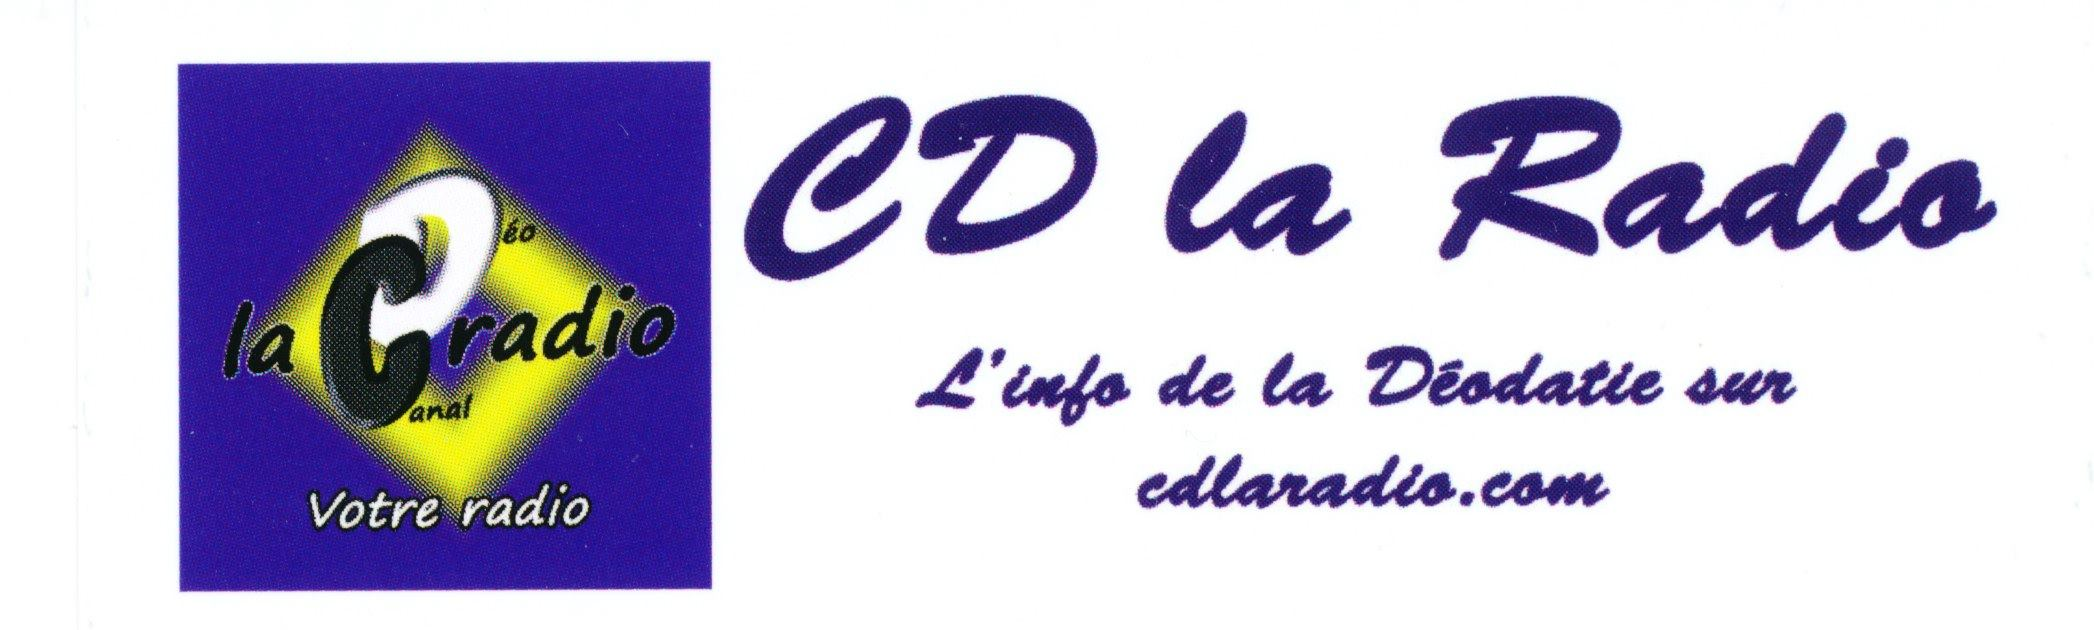 logo de CD la radio